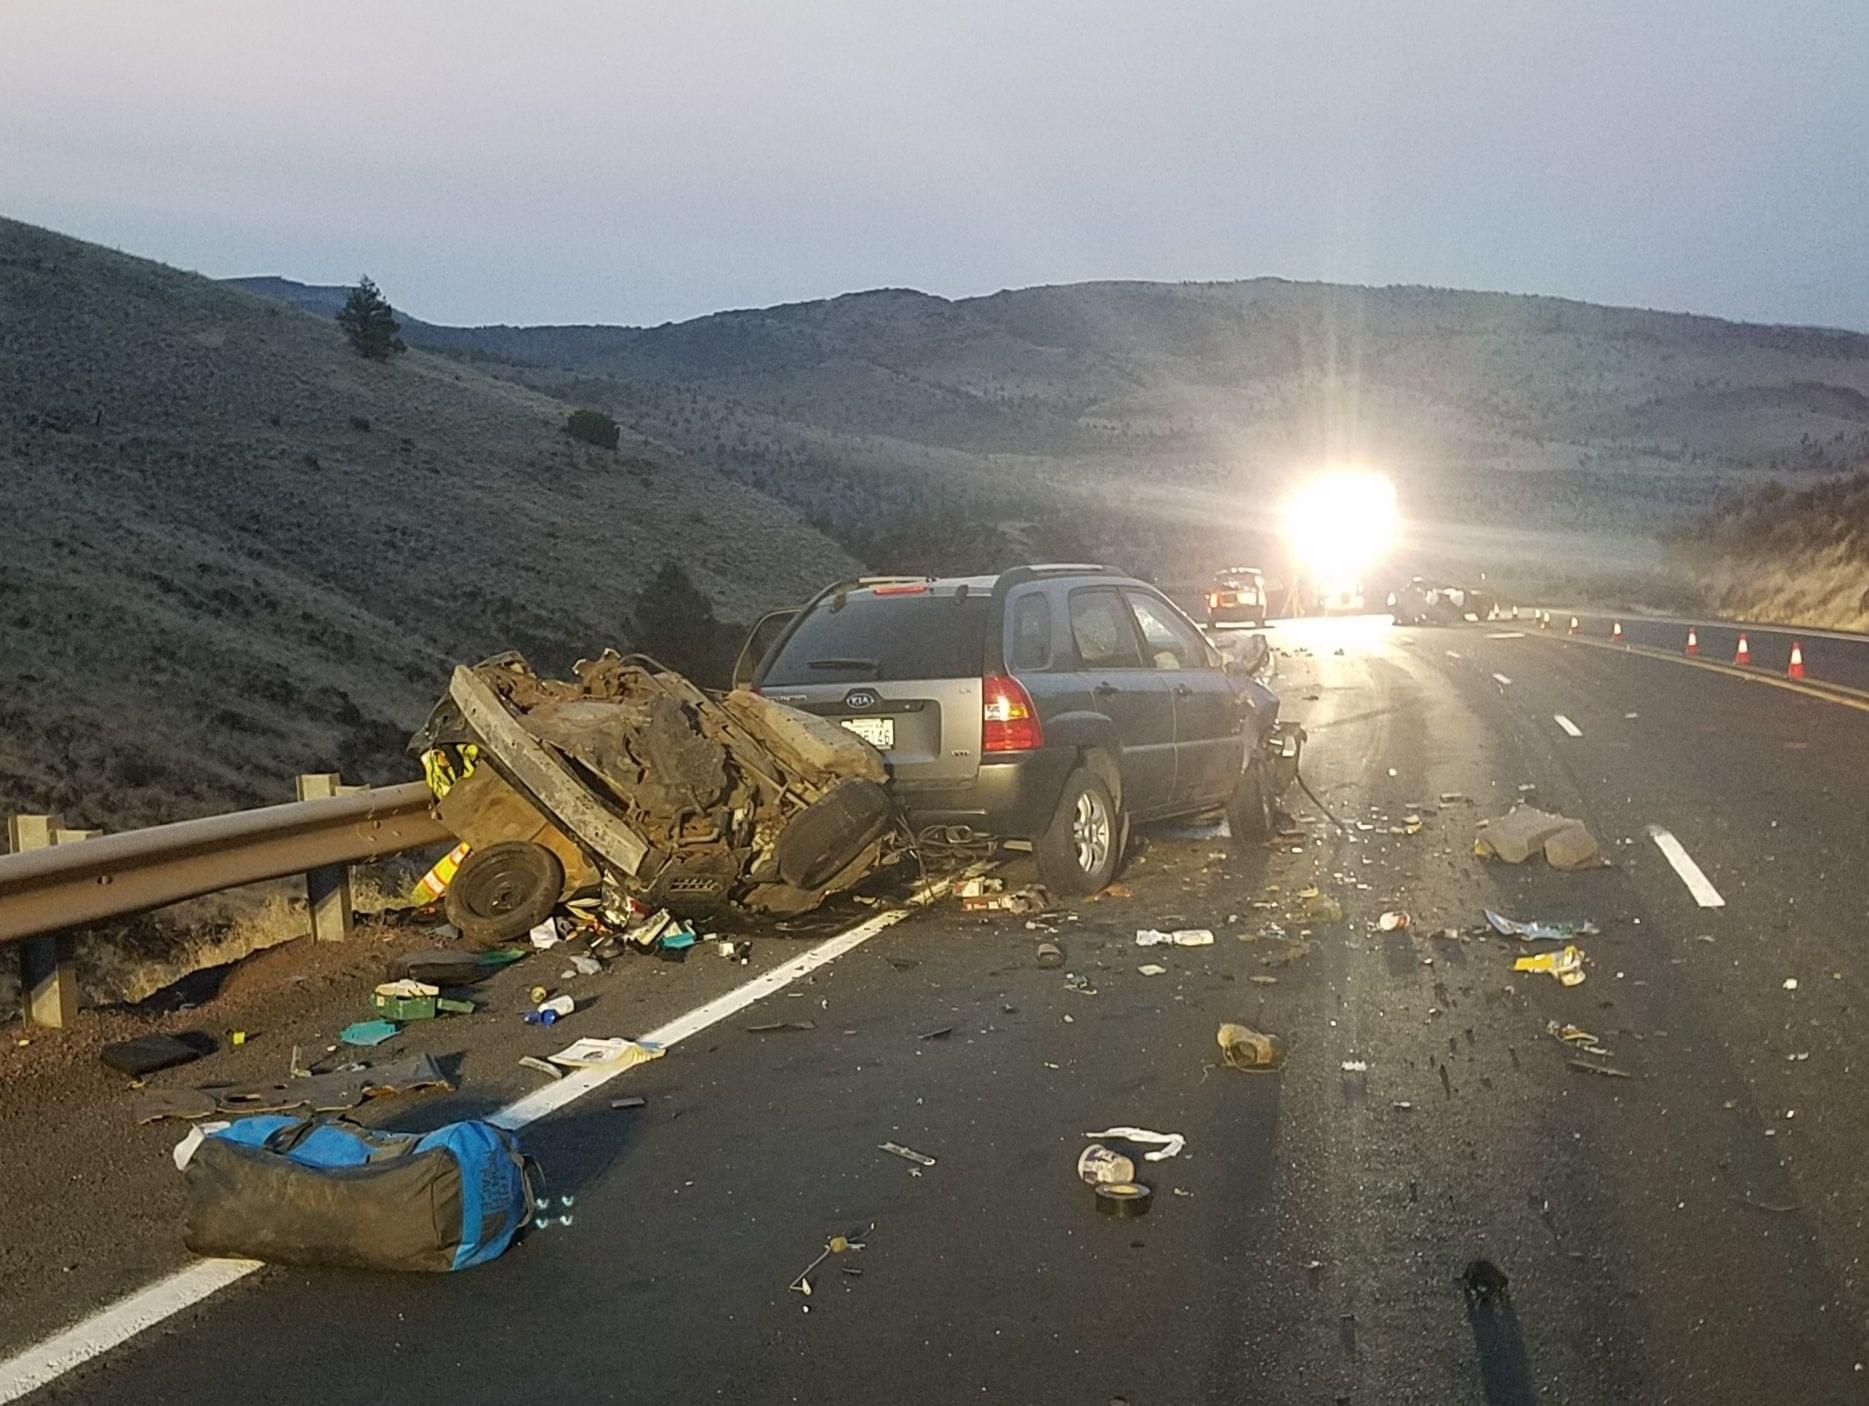 One adult, two juveniles killed in crash on Hwy 97